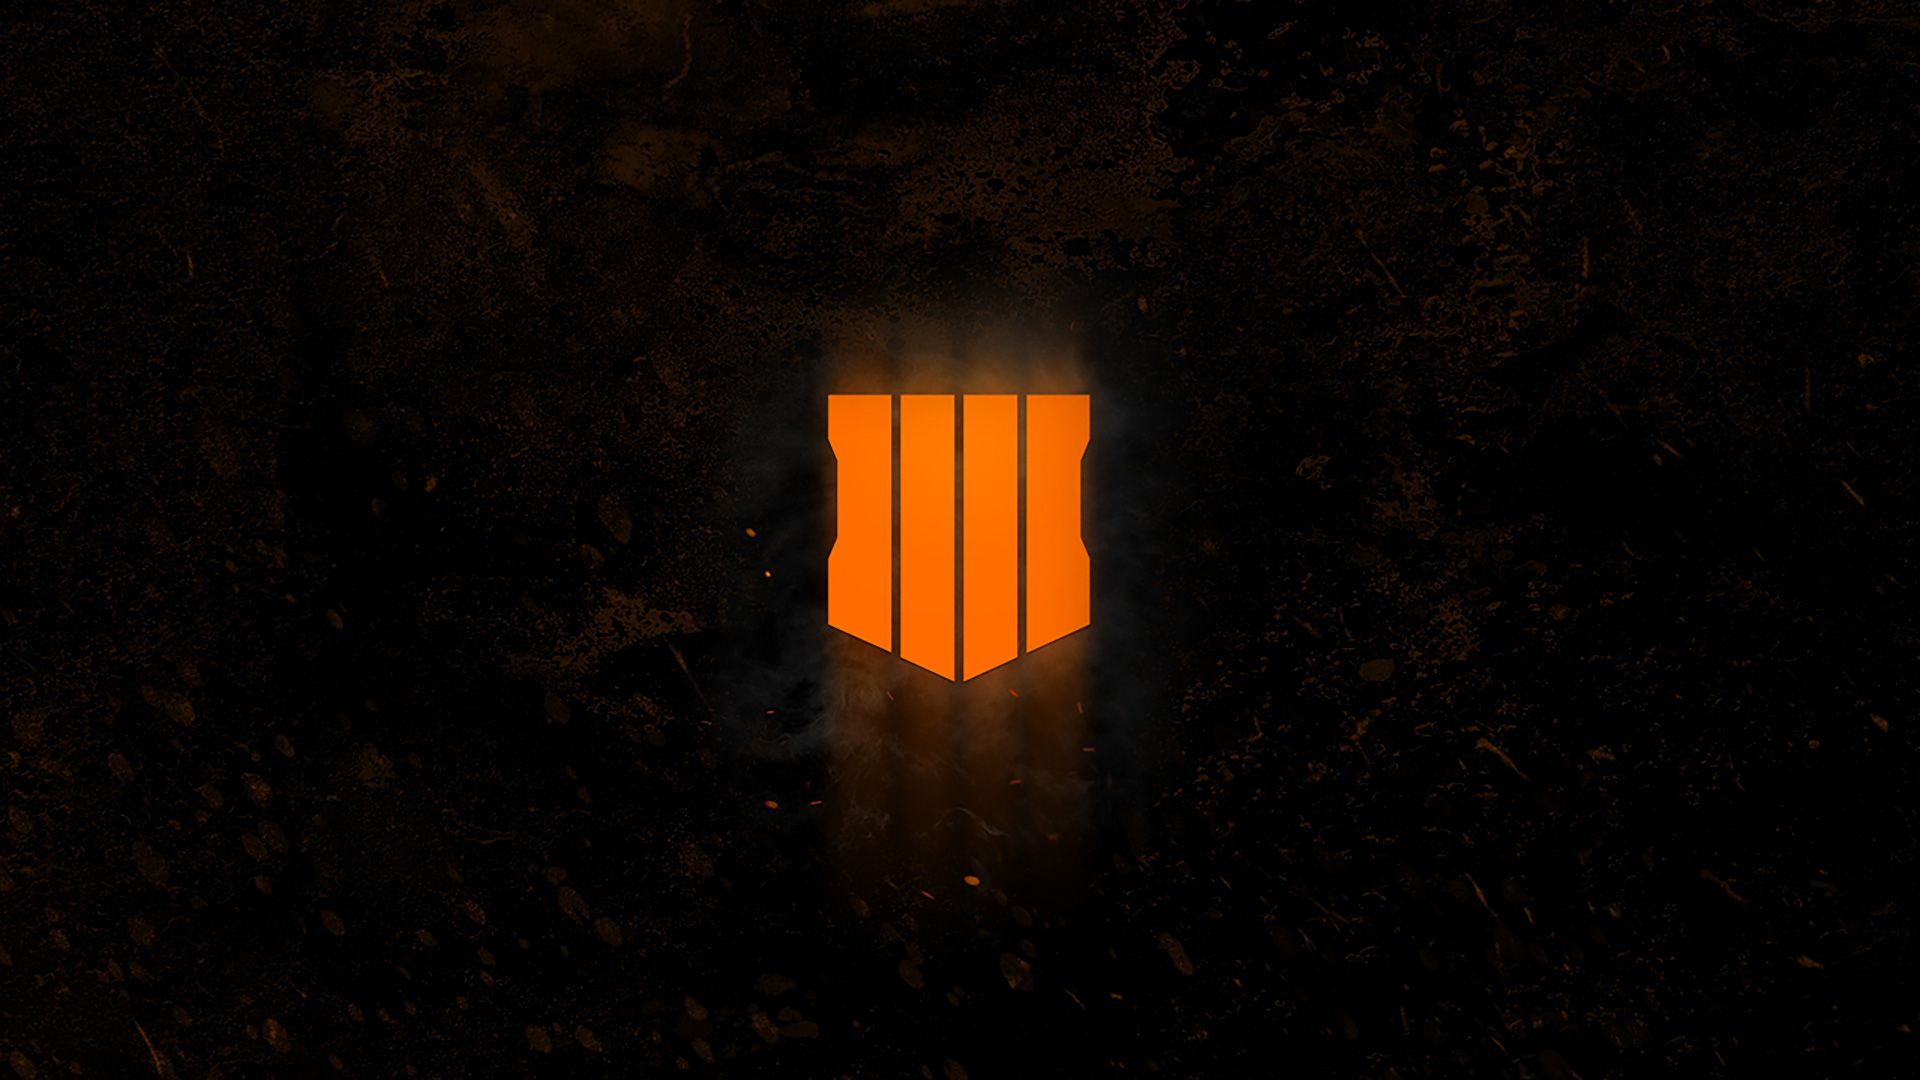 Stigle Call of Duty: Black Ops 4 informacije